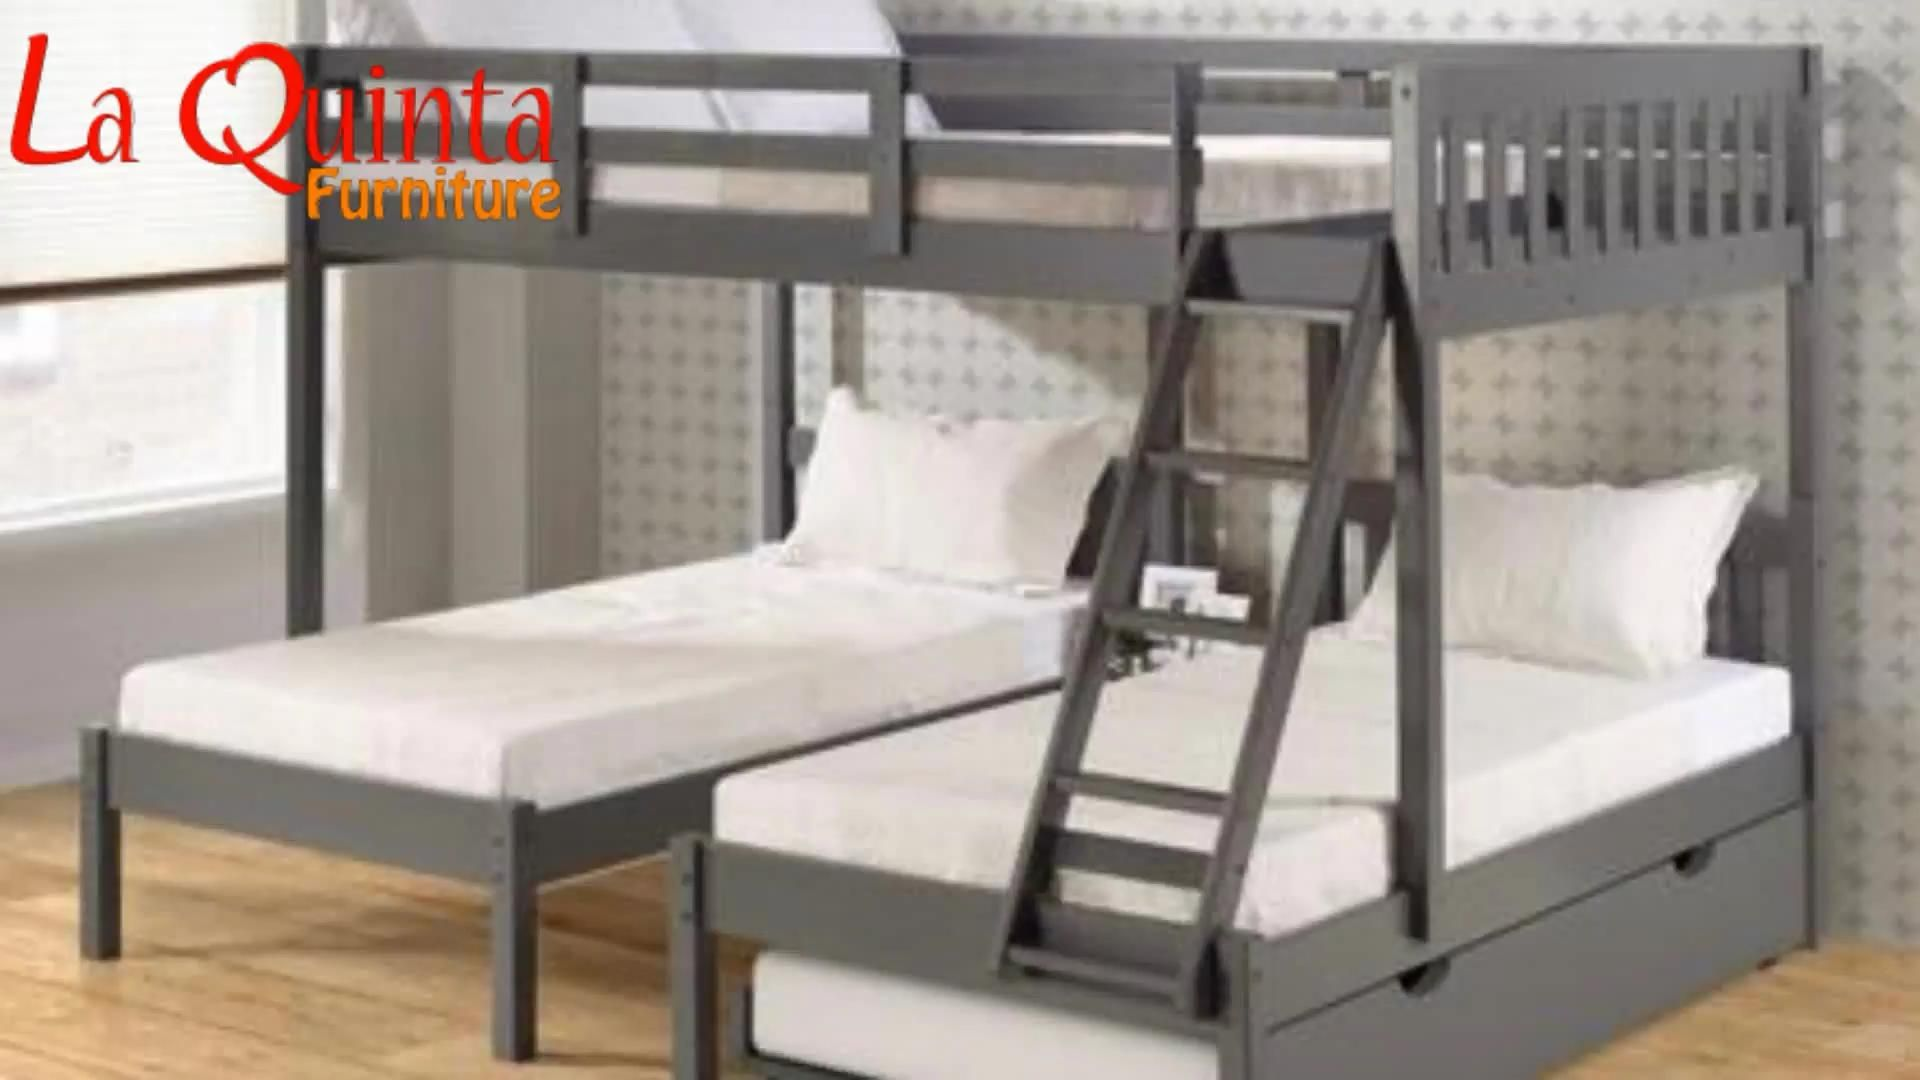 Full Double Twin Bunkbed Video Bunk Beds Bunk Bed Designs Bunk Beds With Storage Twin bunk beds with mattress included